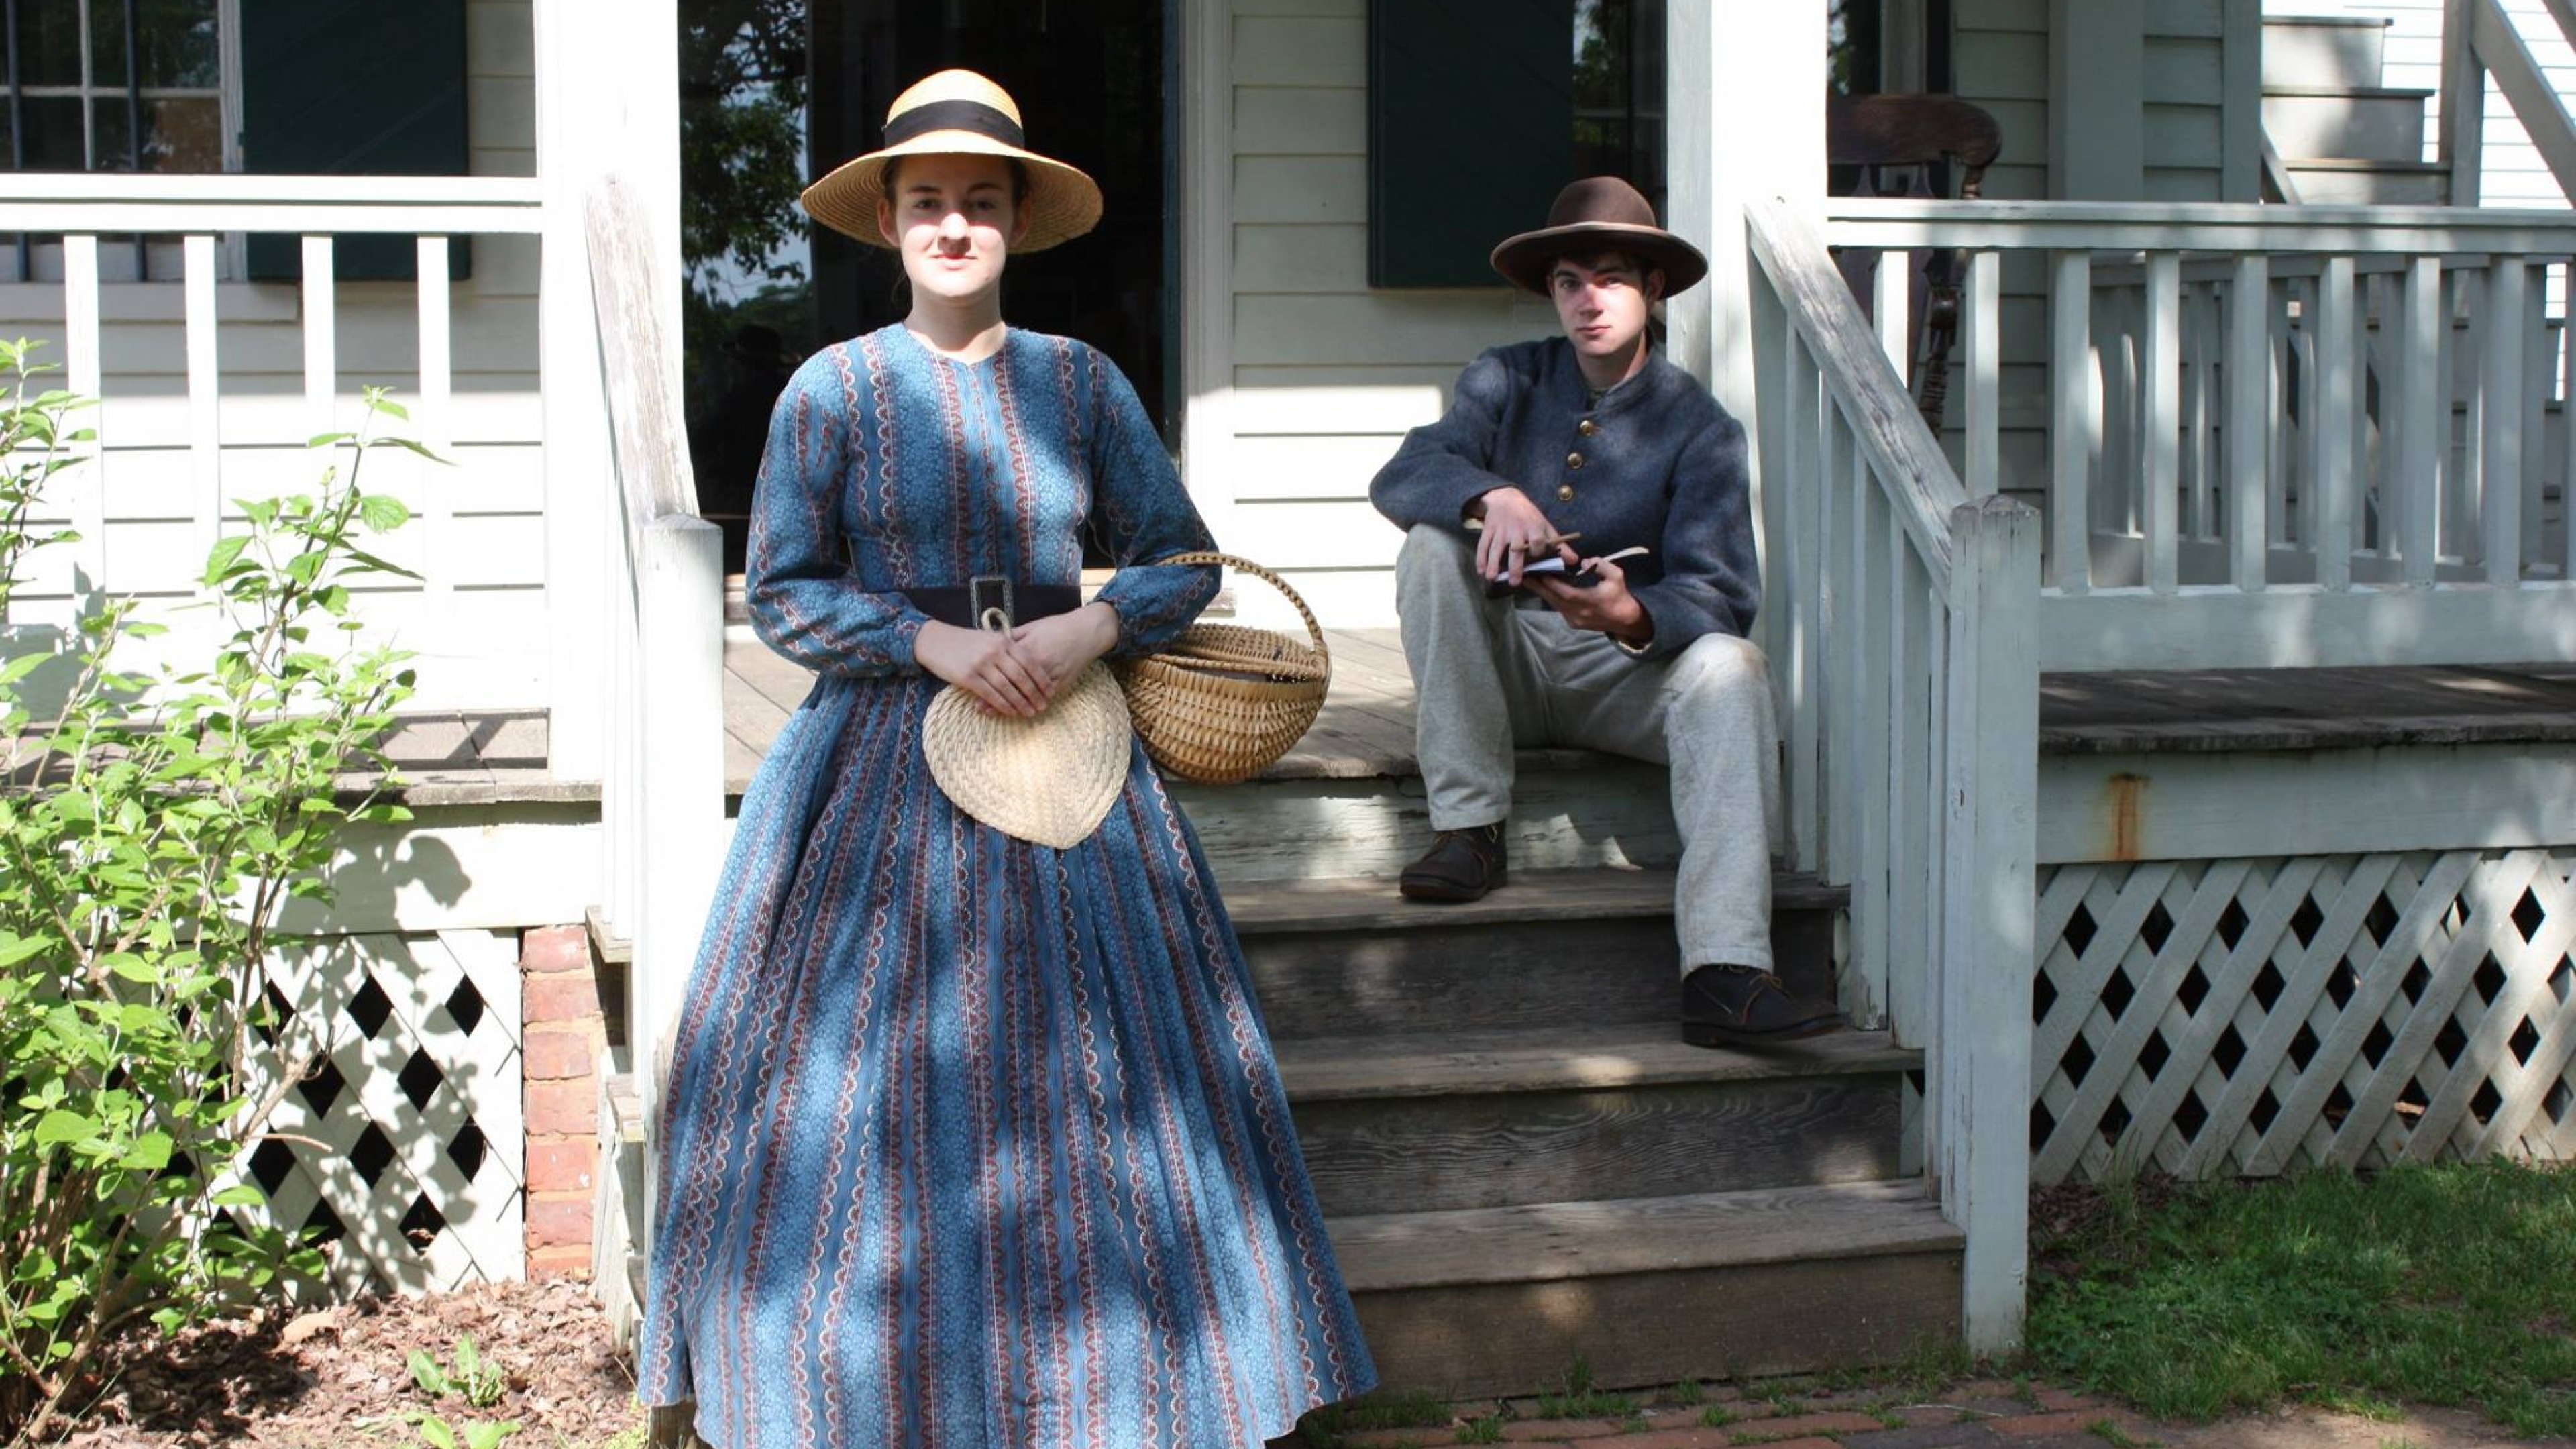 A woman an a boy wearing historical clothes in front of a house at Appomattox Court House National Historical Park